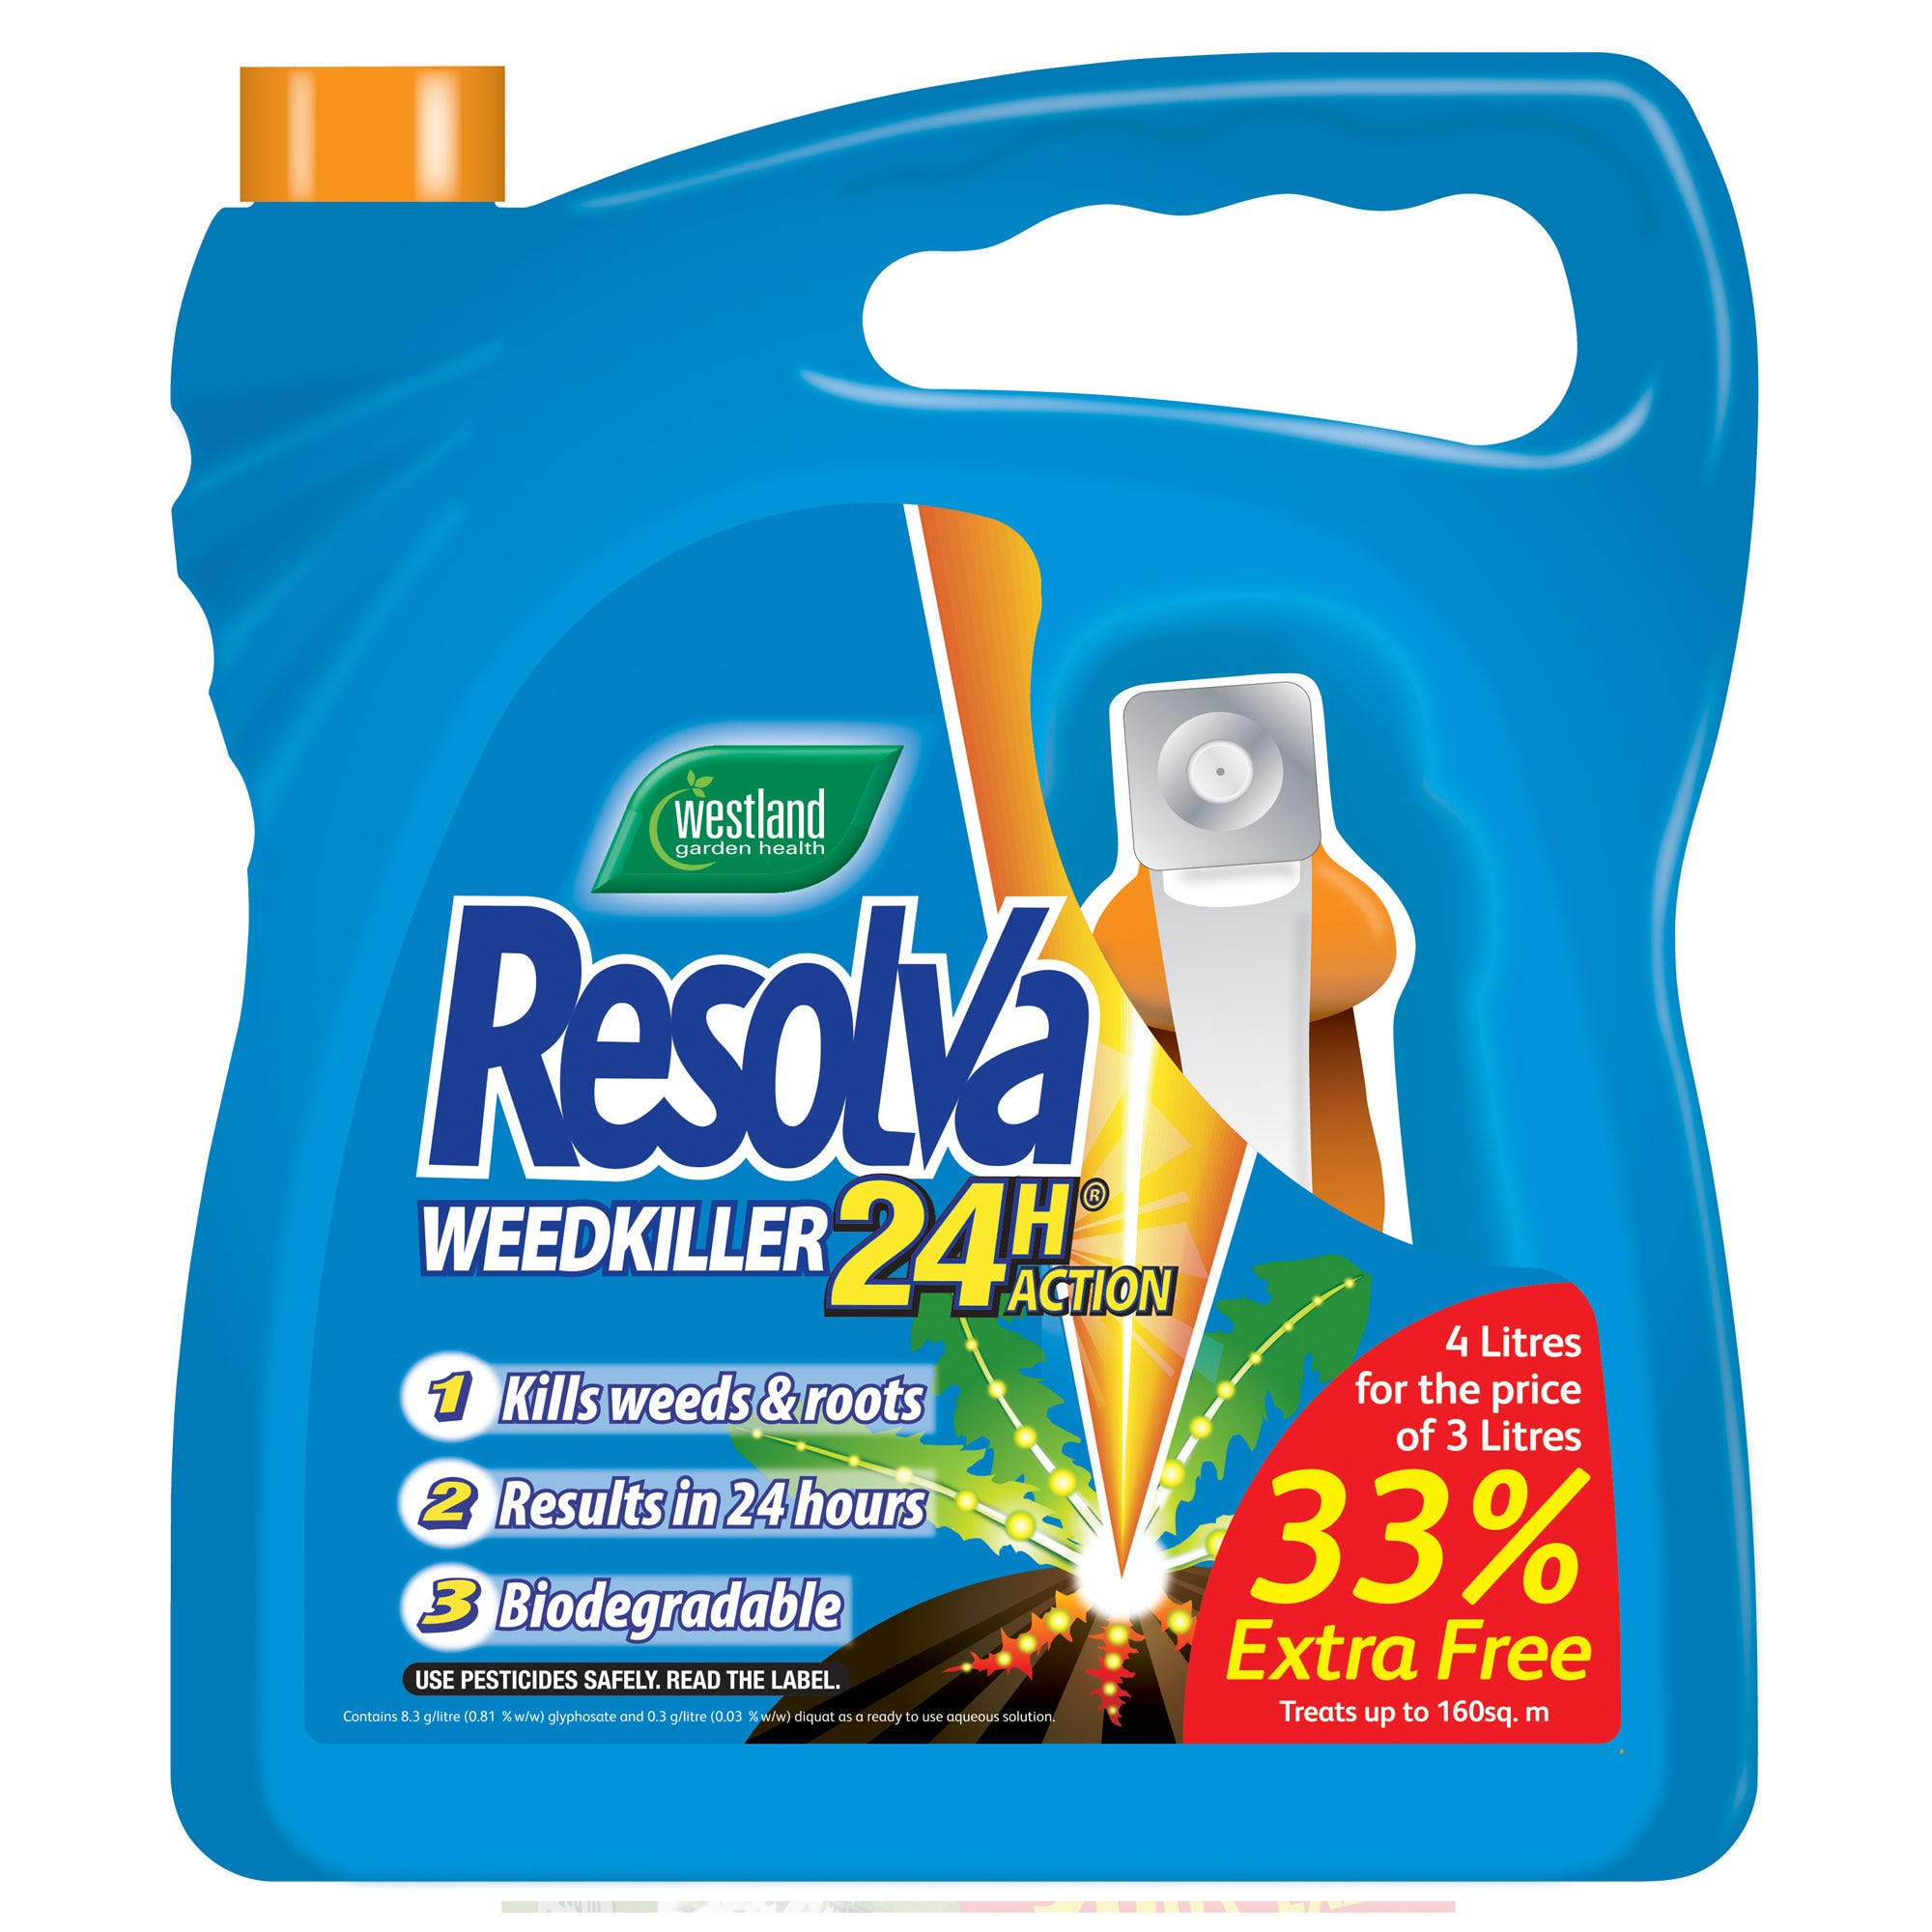 Image of Resolva Weedkiller 24 Hour Action 3 Litre + 33% Extra Free